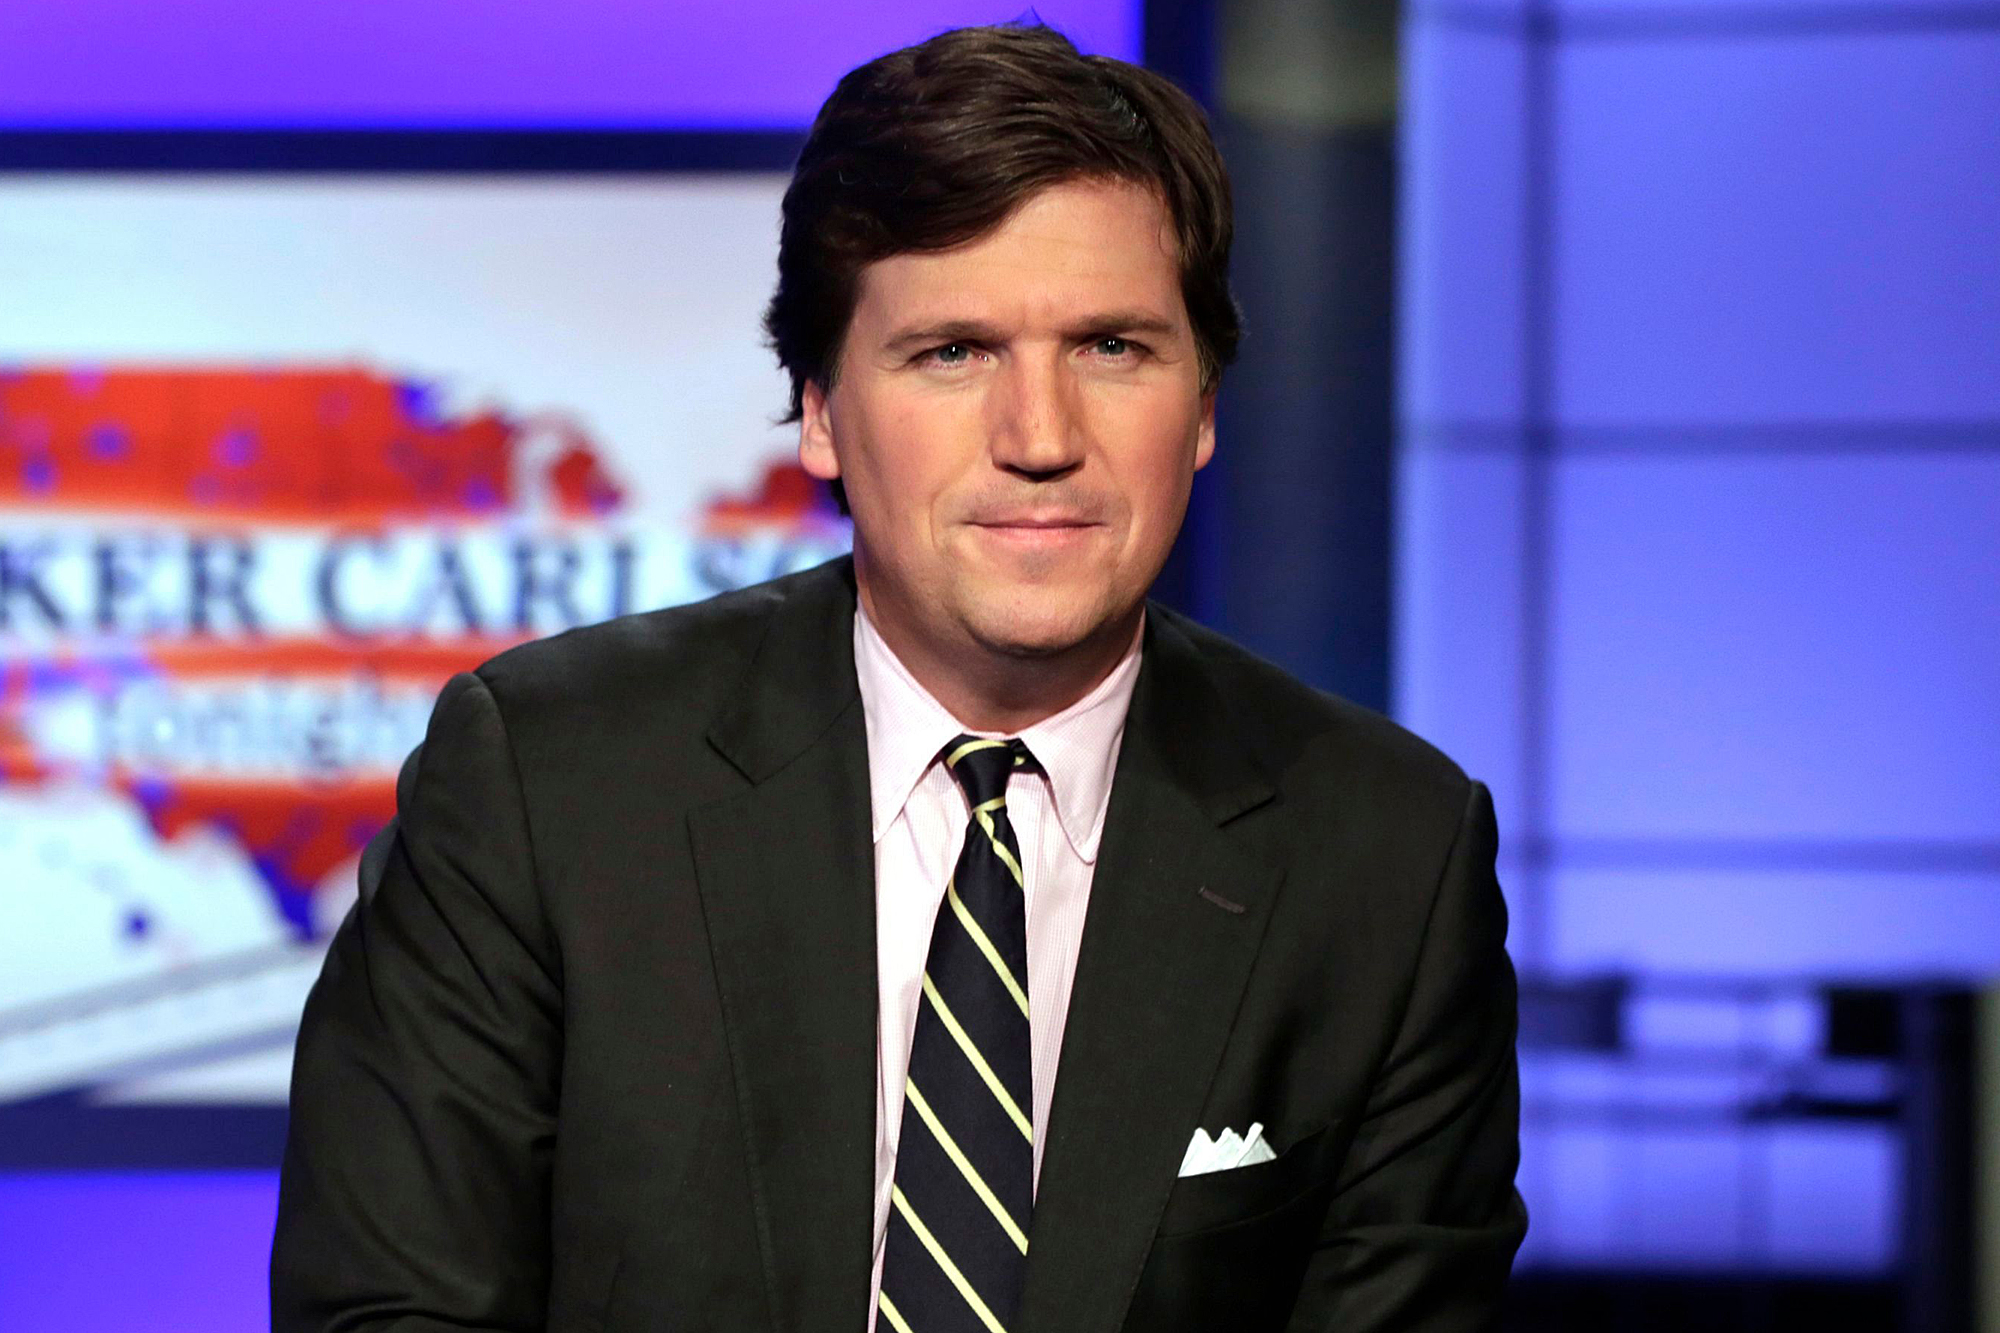 """Tucker Carlson Tonight"" Loses T-Mobile and ABC Ads After His Comments on Black Lives Matter"